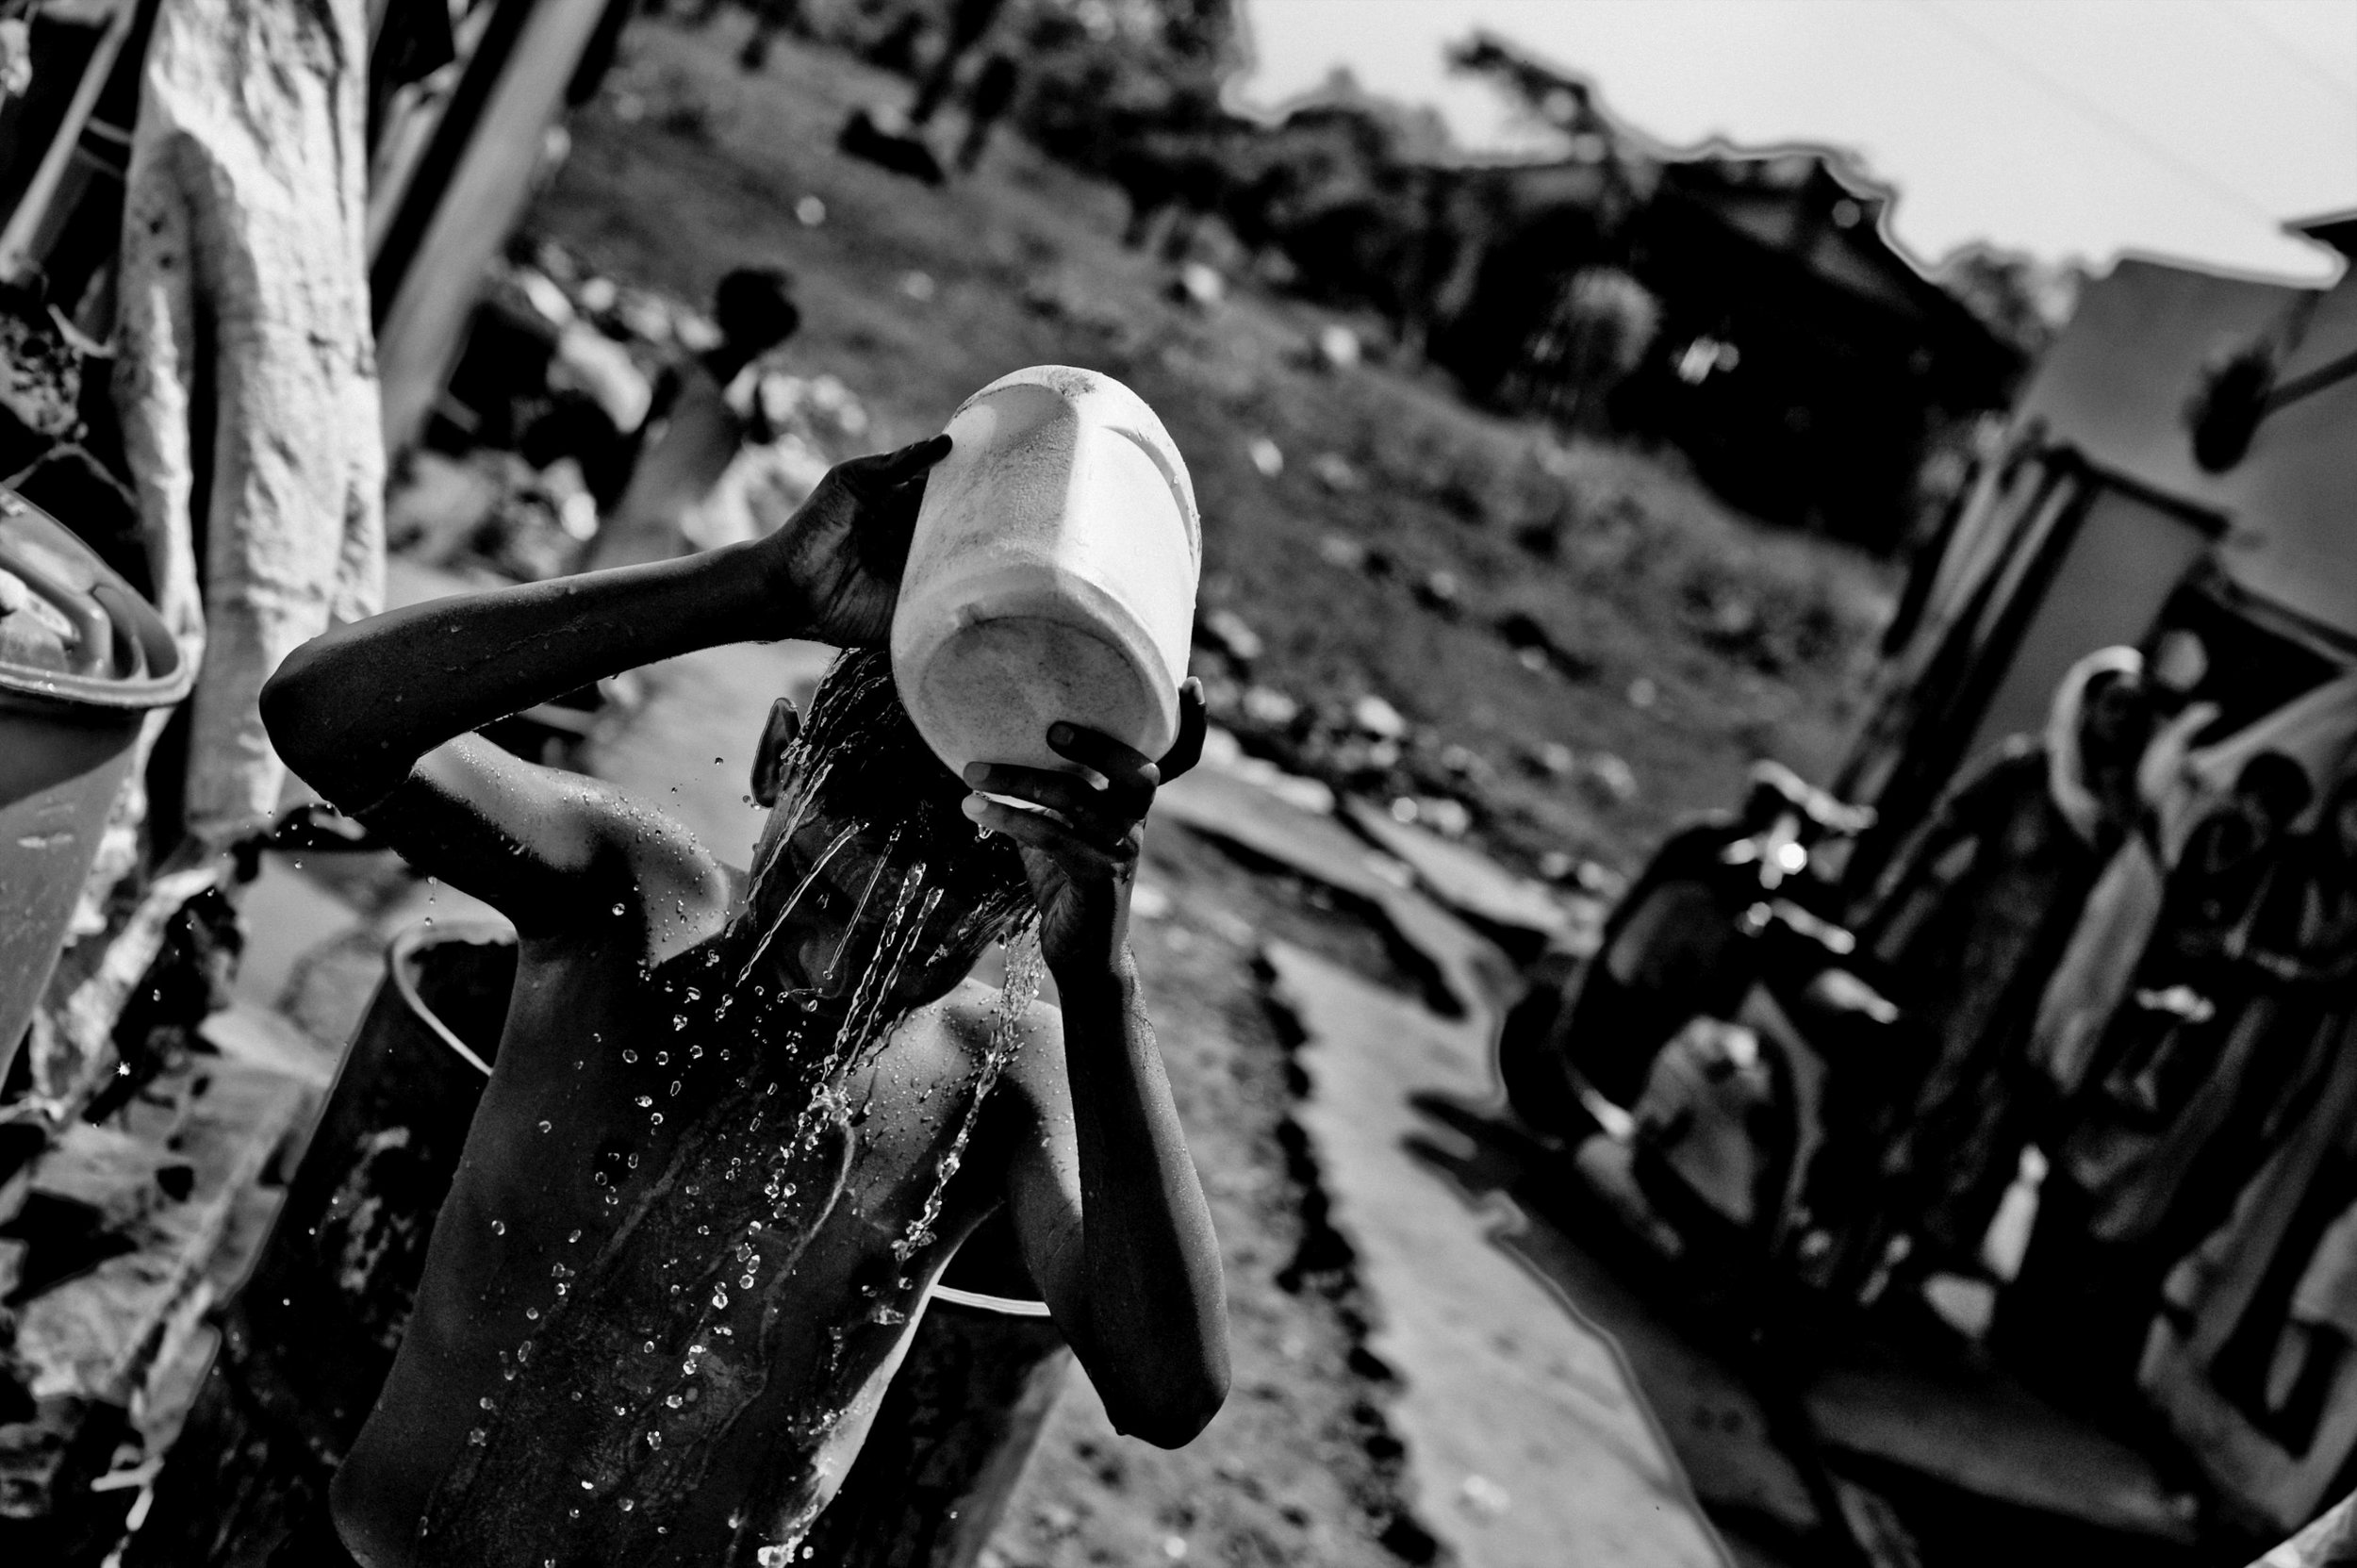 A boy bathes in front of the shack he lives on the site of the Union Carbide plant behind him in the city of Bhopal in the state Madhya Pradesh, India.